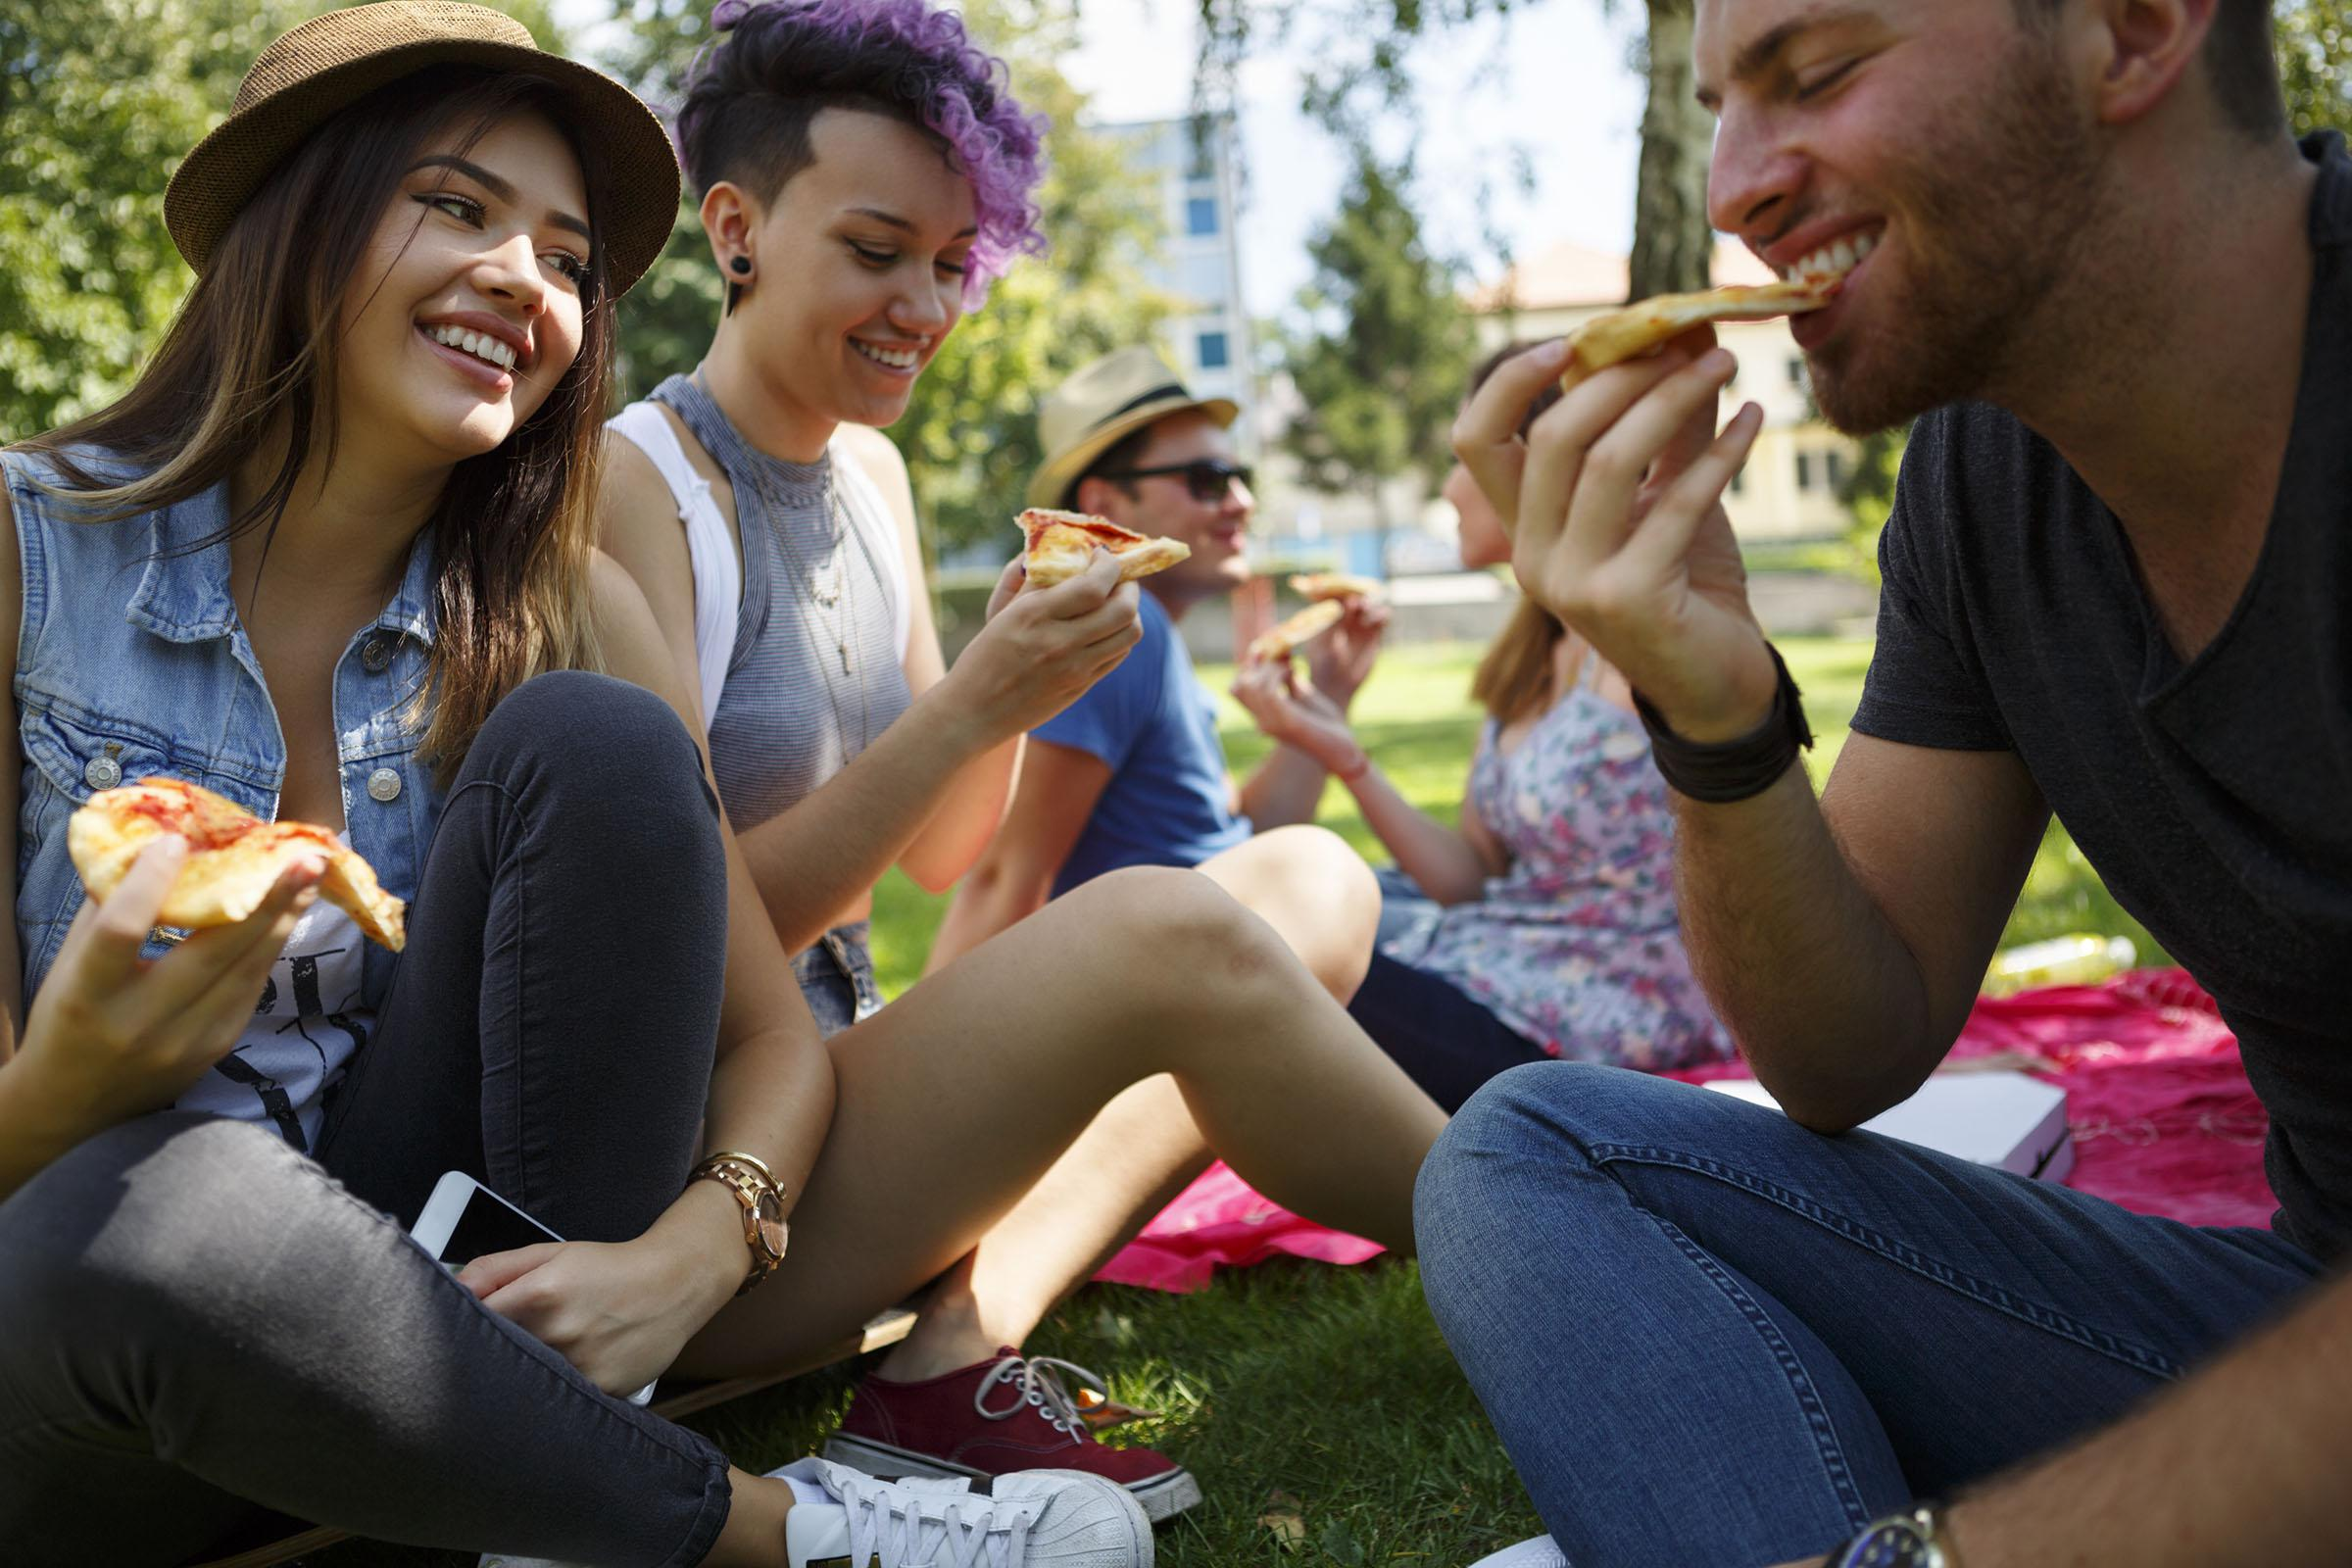 a group of people eating hot dogs